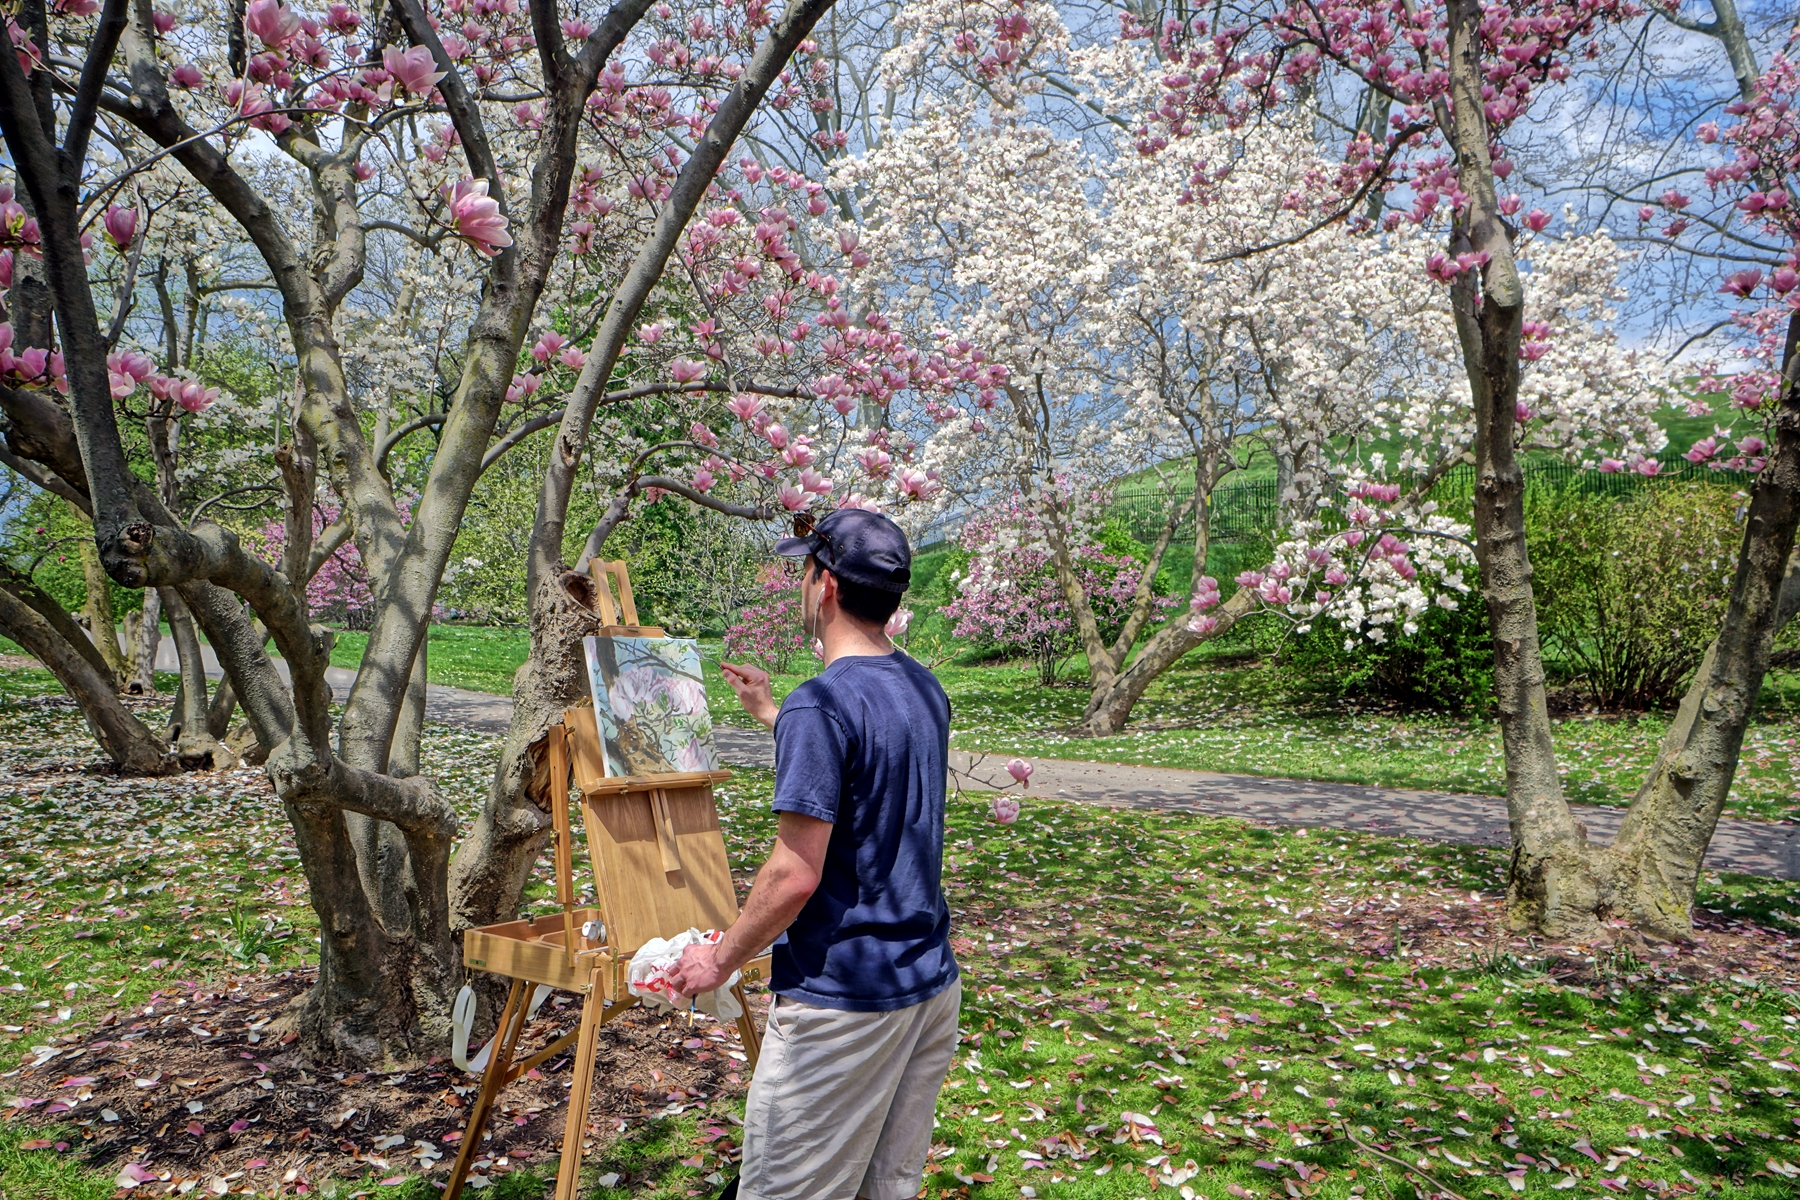 Painting in Highland Park, Rochester, NY, May 2018